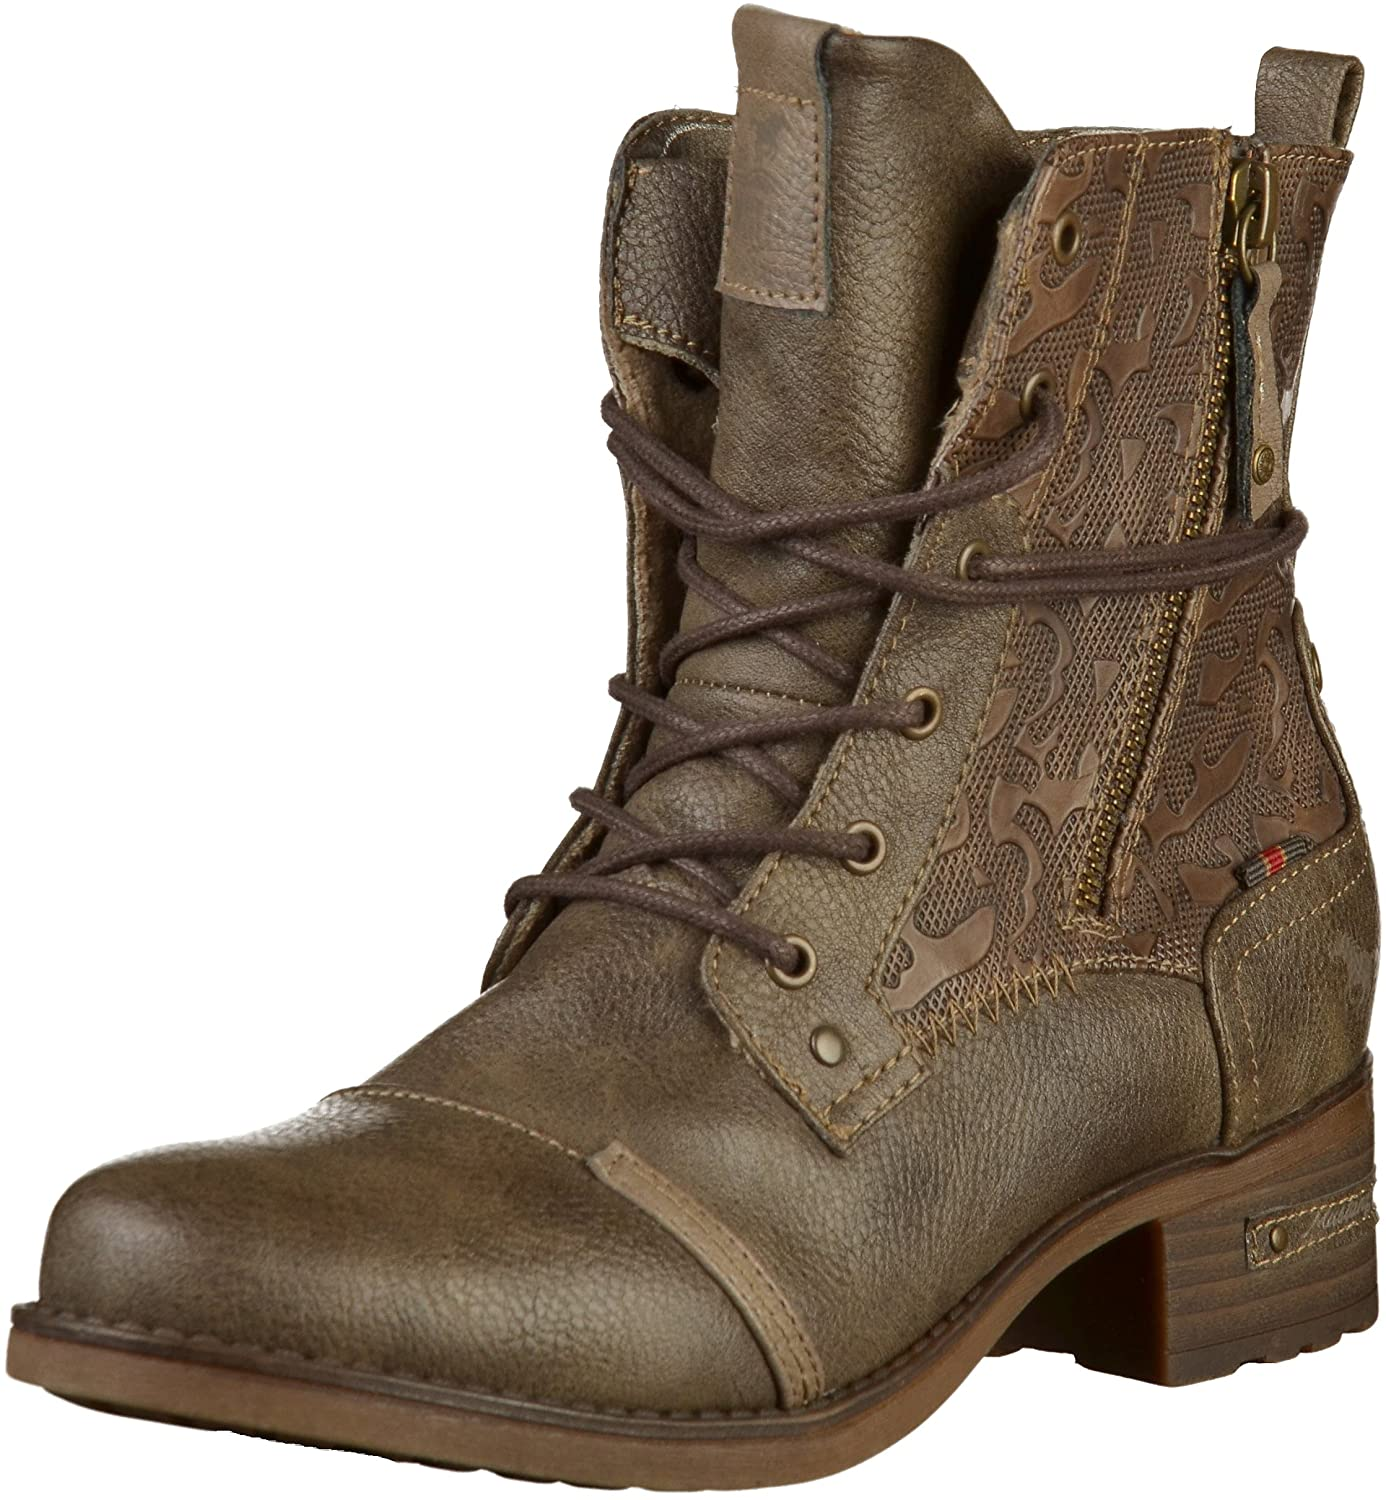 Mustang Schnür-Stiefelette, Botines Botines Mustang Femme 19213 Marron 4bfbe9b - reprogrammed.space